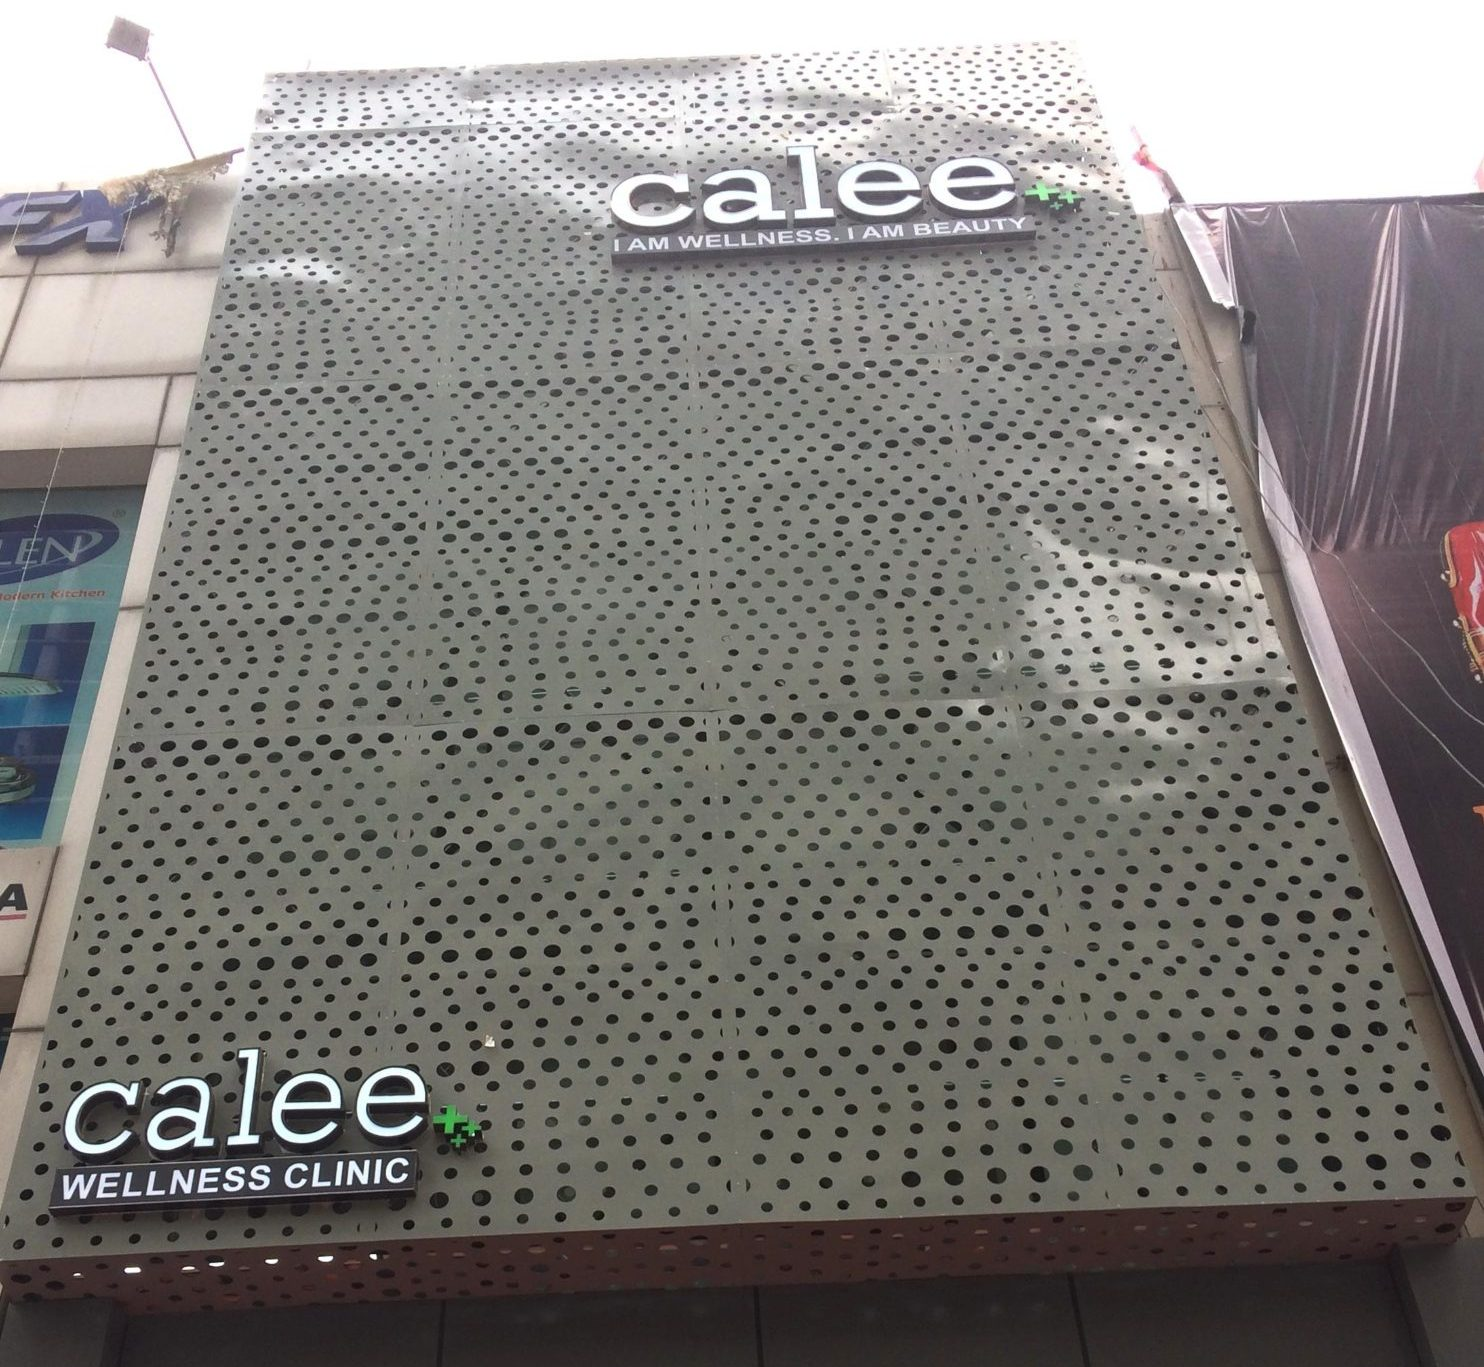 calee wellness building in Noida